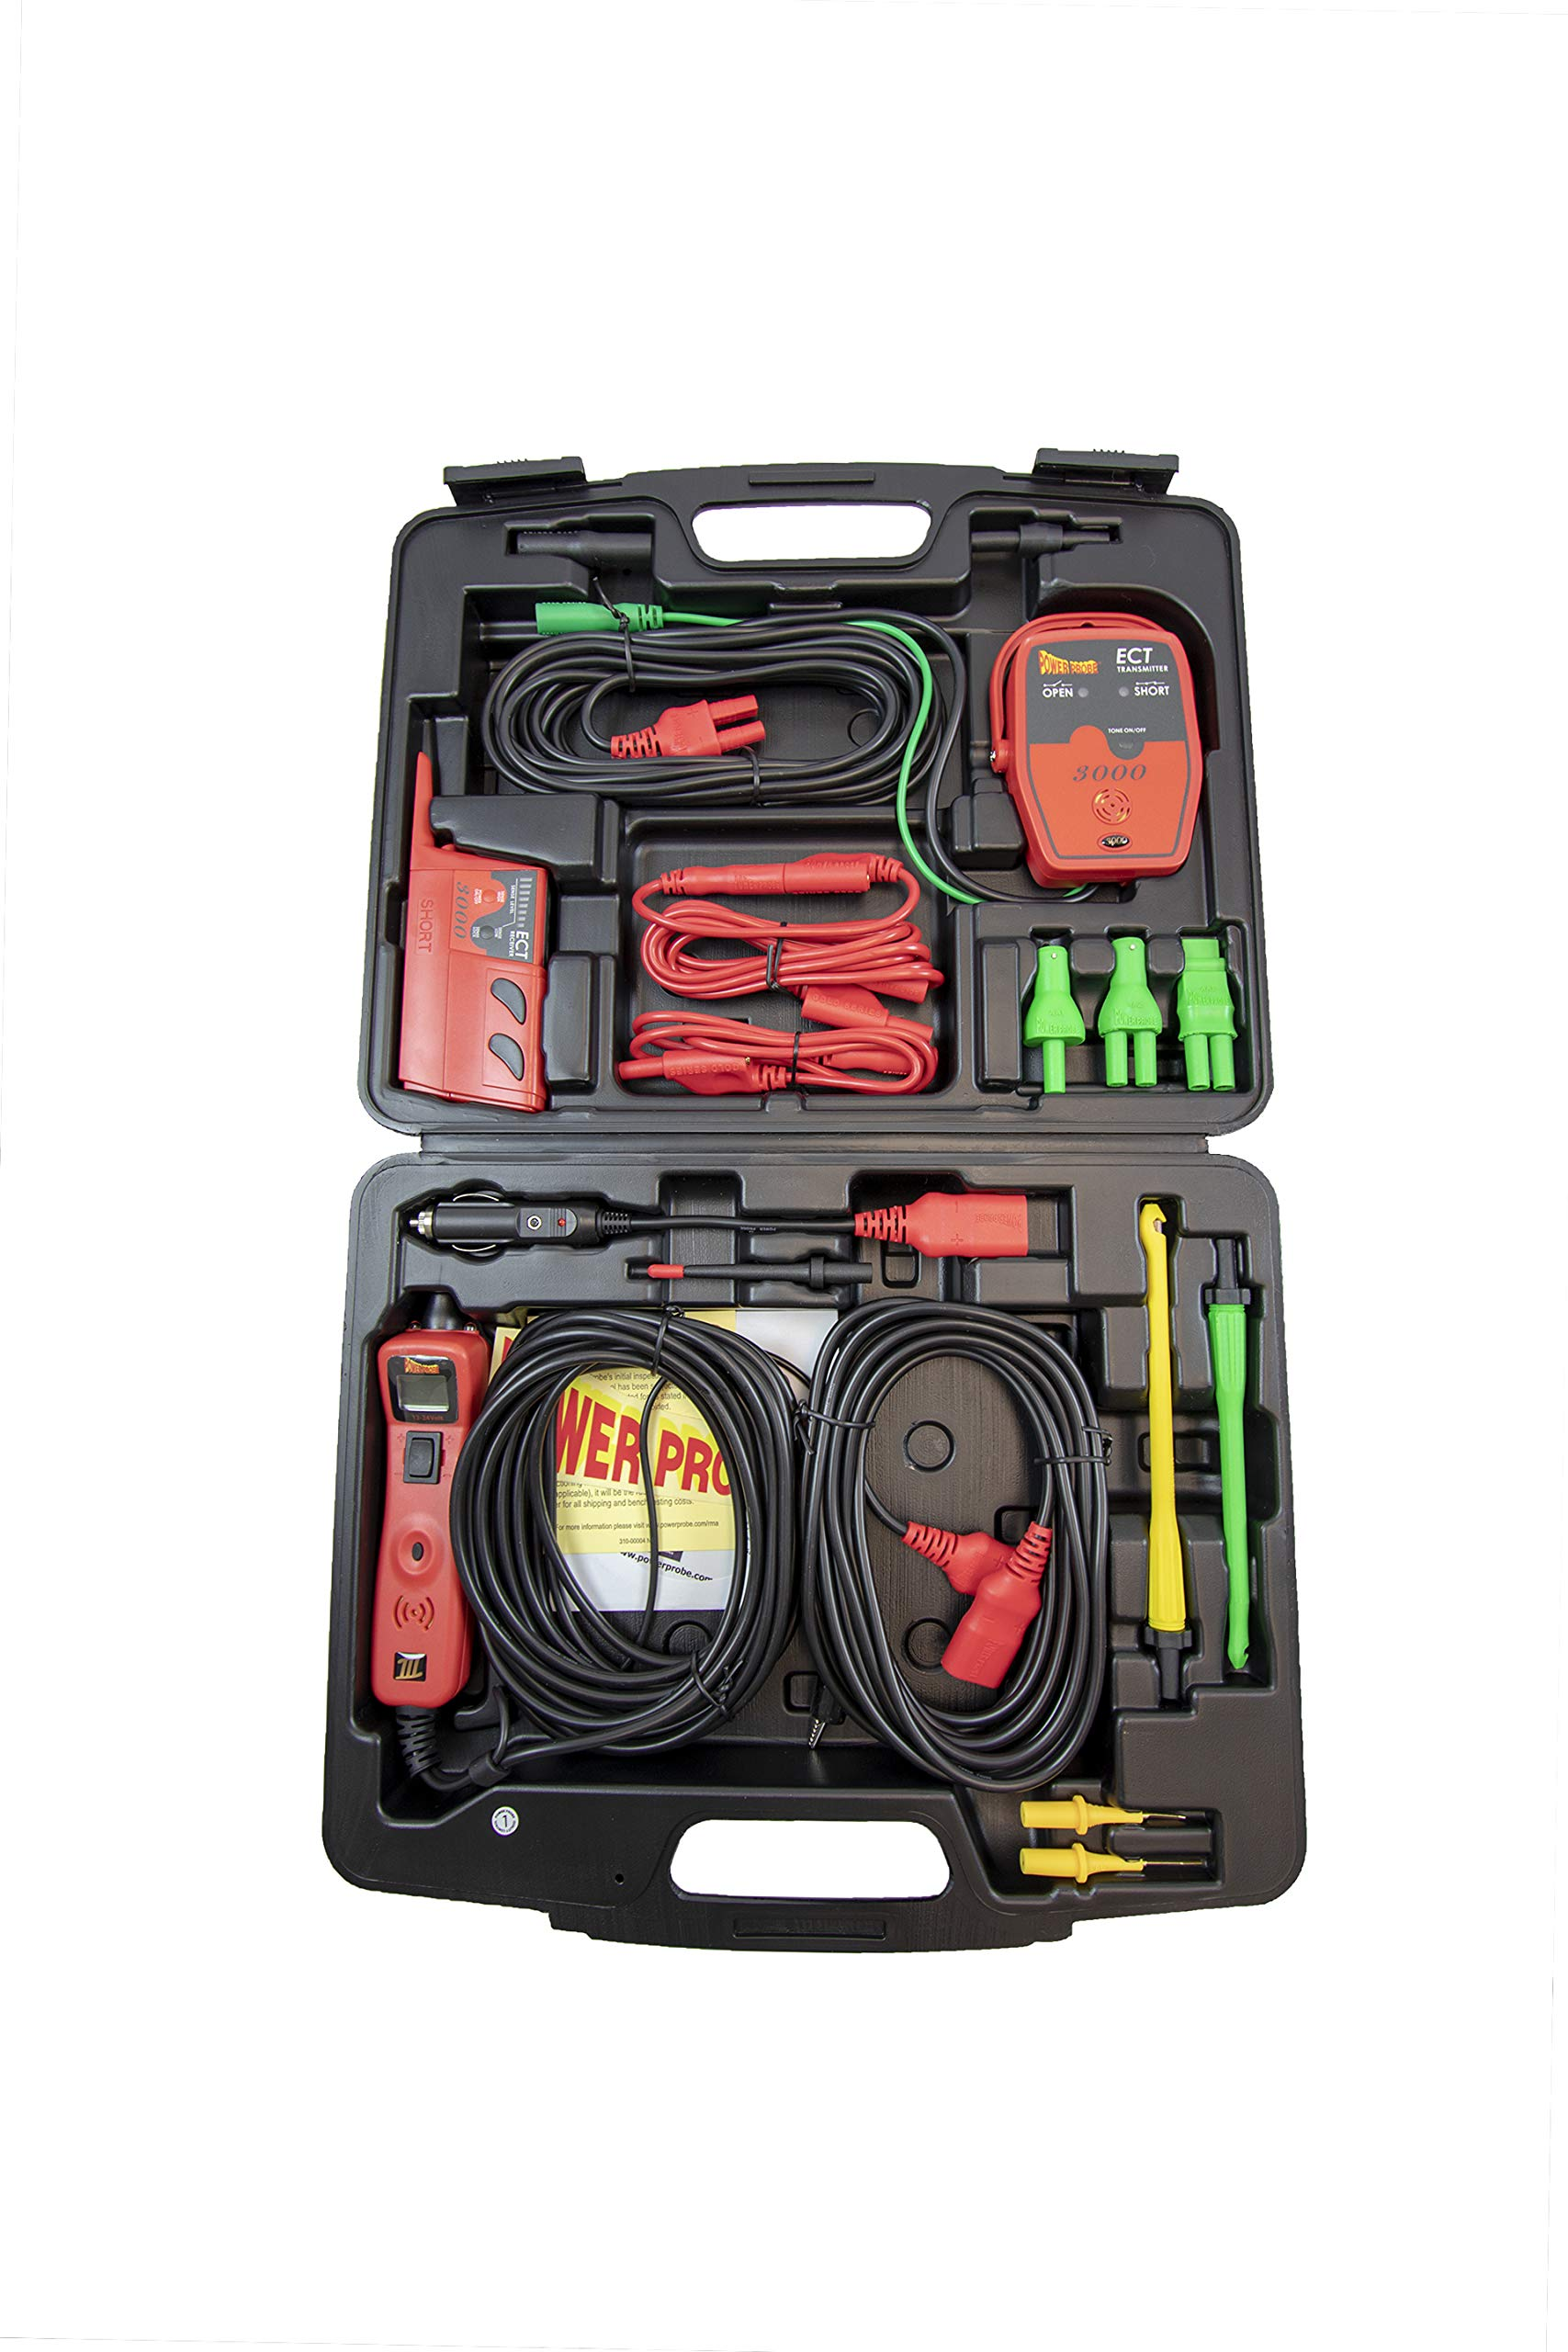 Diesel Laptops Power Probe 3 (III) Master Combo Kit with 12-Months of Truck Fault Codes by Diesel Laptops (Image #6)